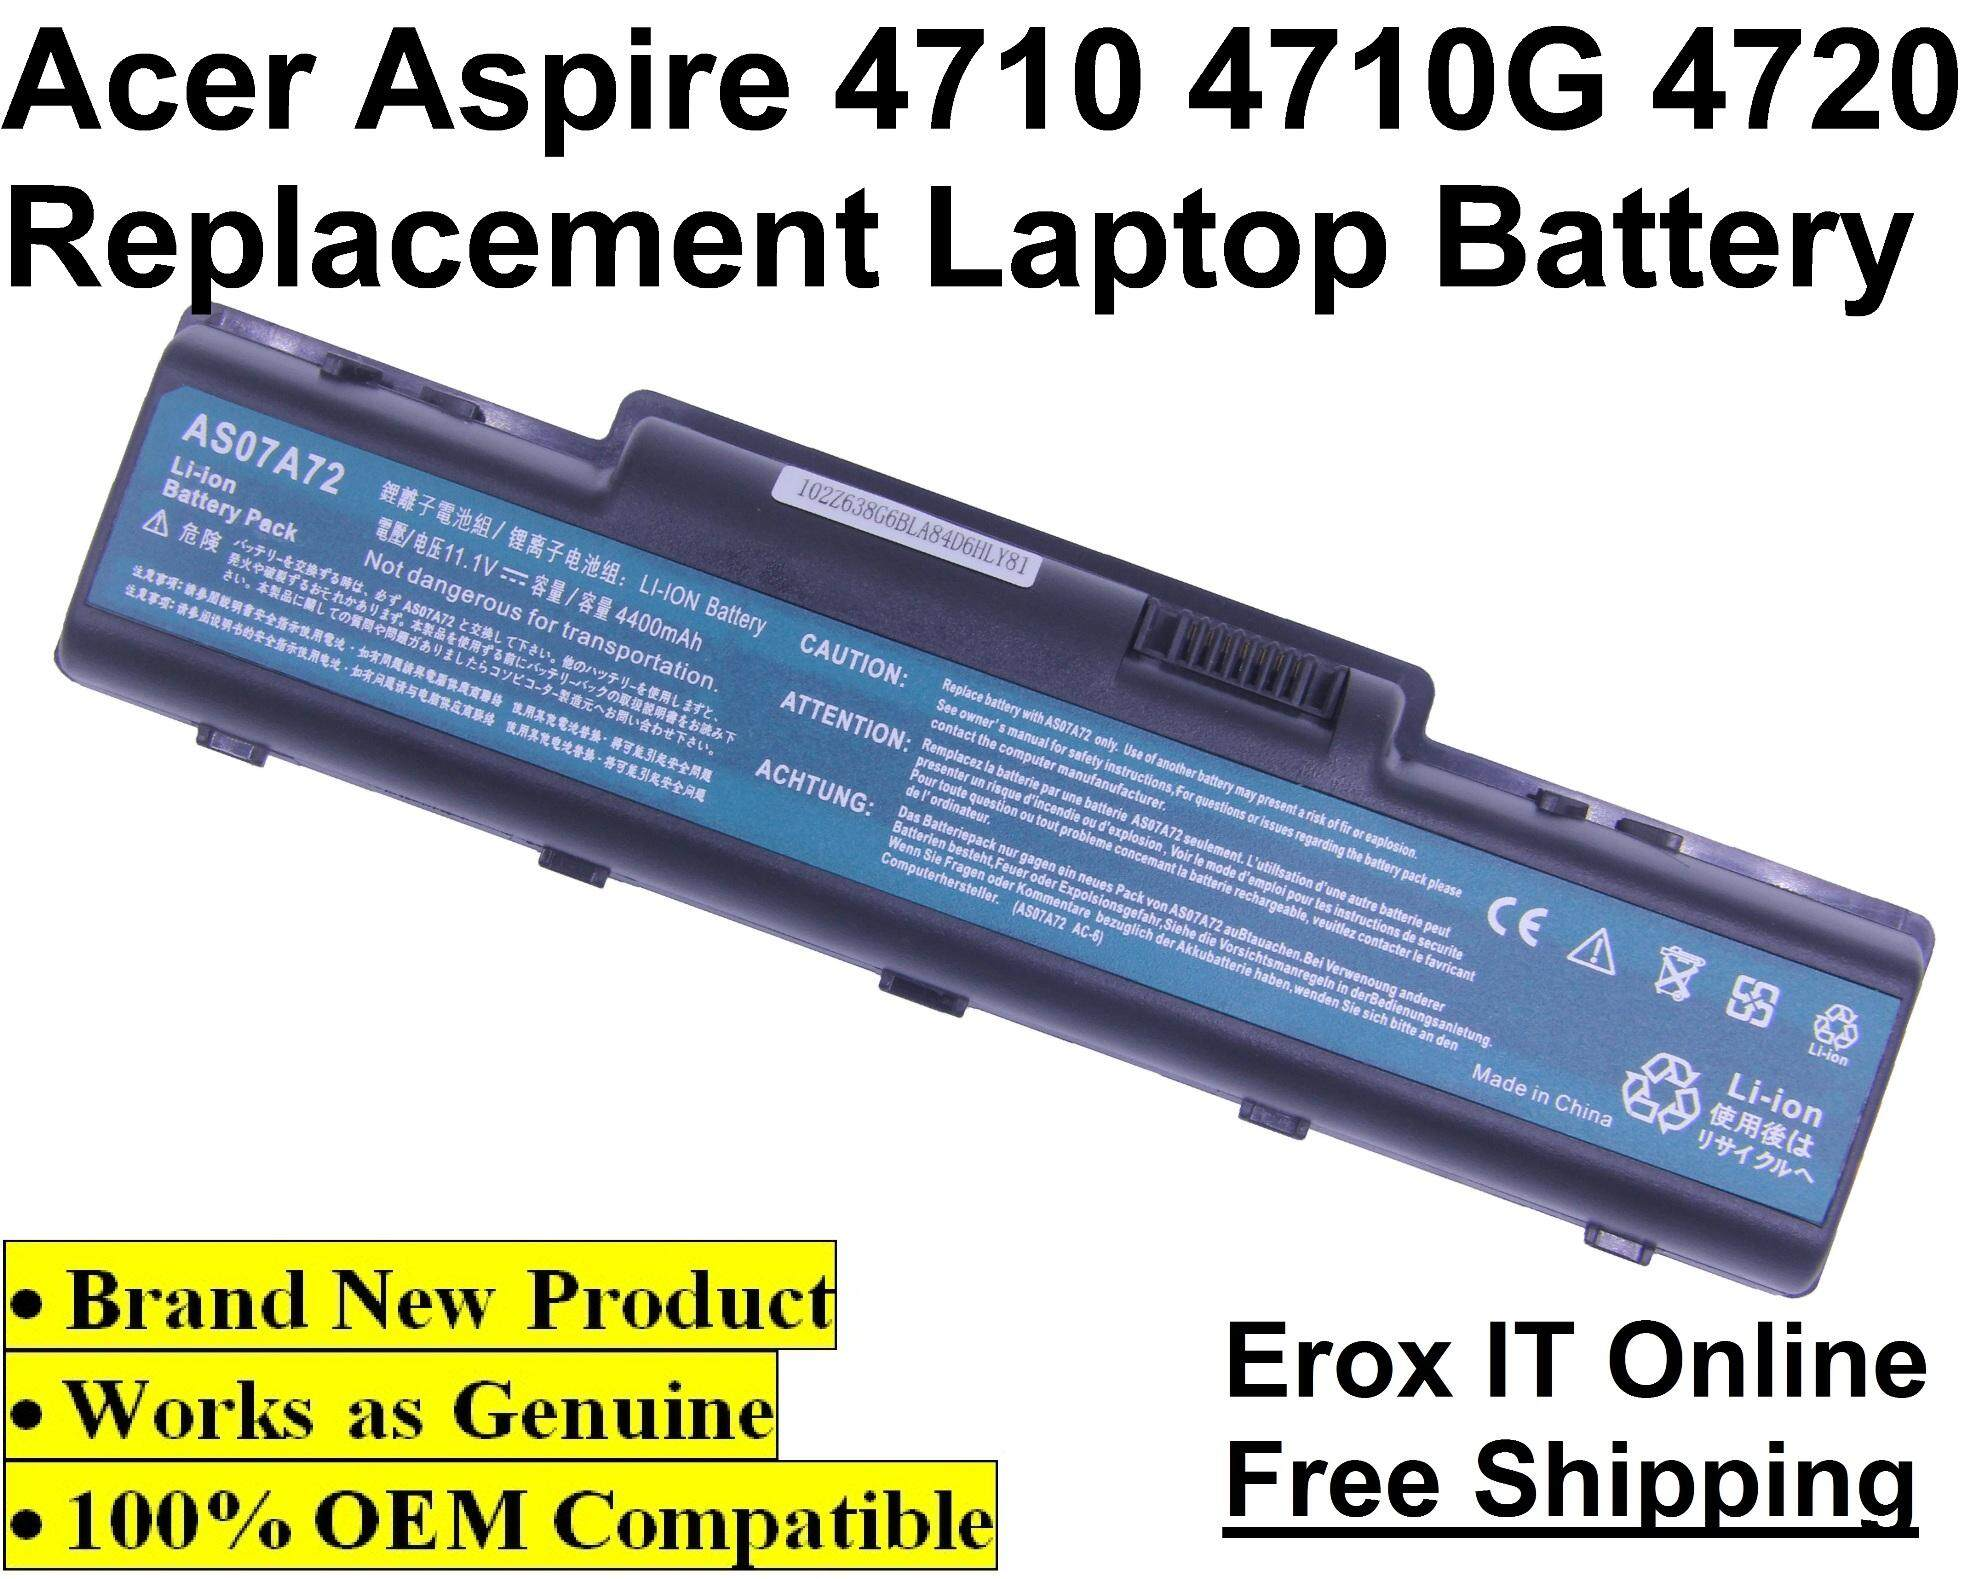 Replacement Laptop Battery for Acer Aspire 4937 Series /4710 Battery Malaysia